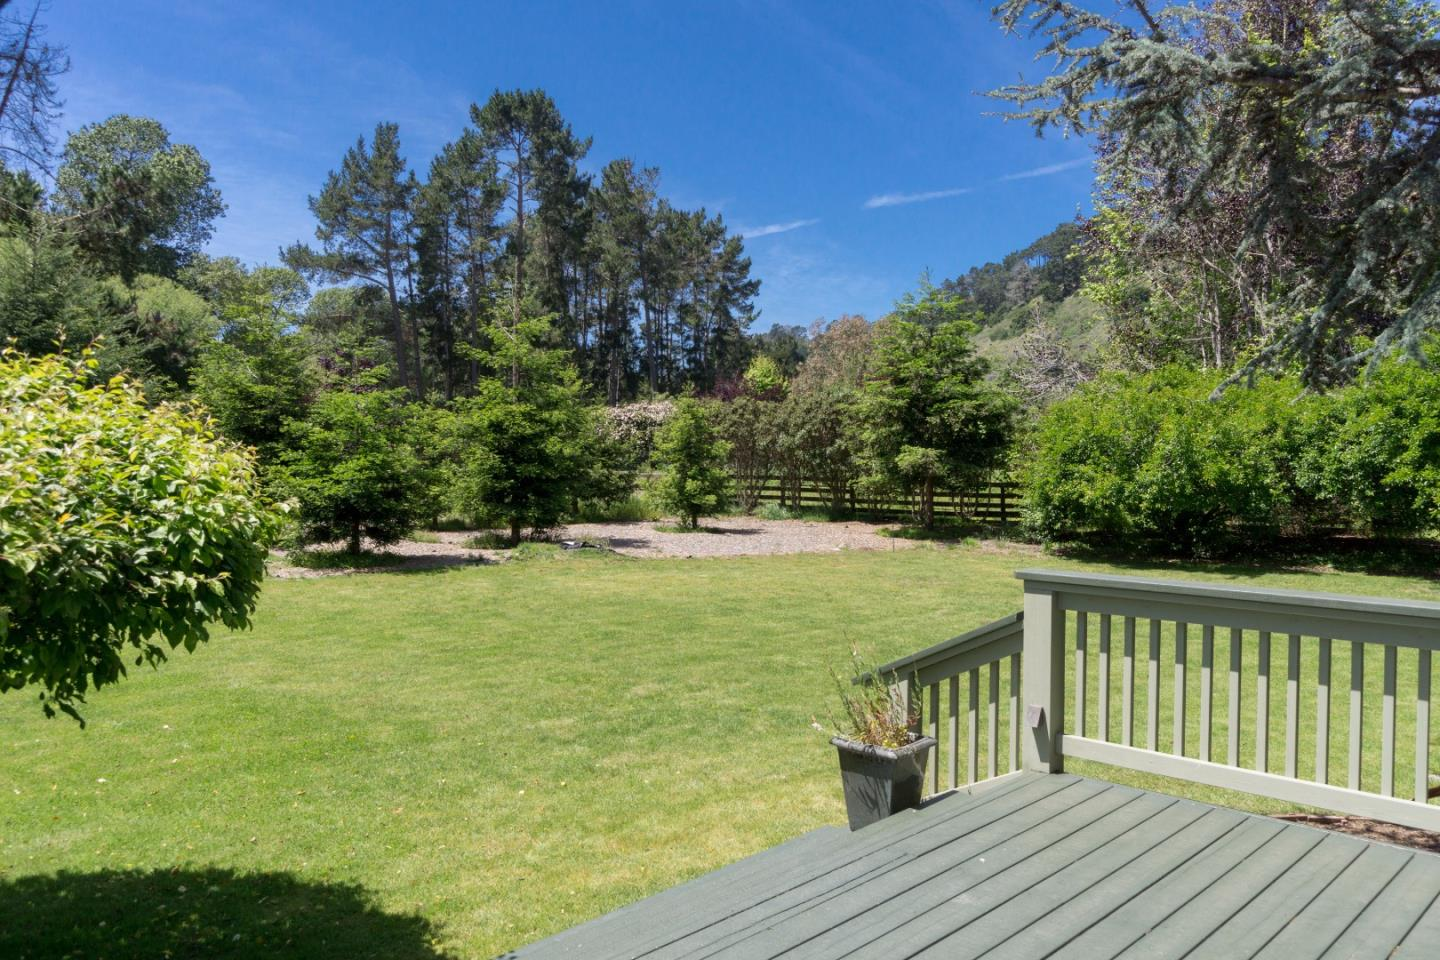 Additional photo for property listing at 26650 Rancho San Carlos Road 26650 Rancho San Carlos Road Carmel, 加利福尼亞州 93923 美國